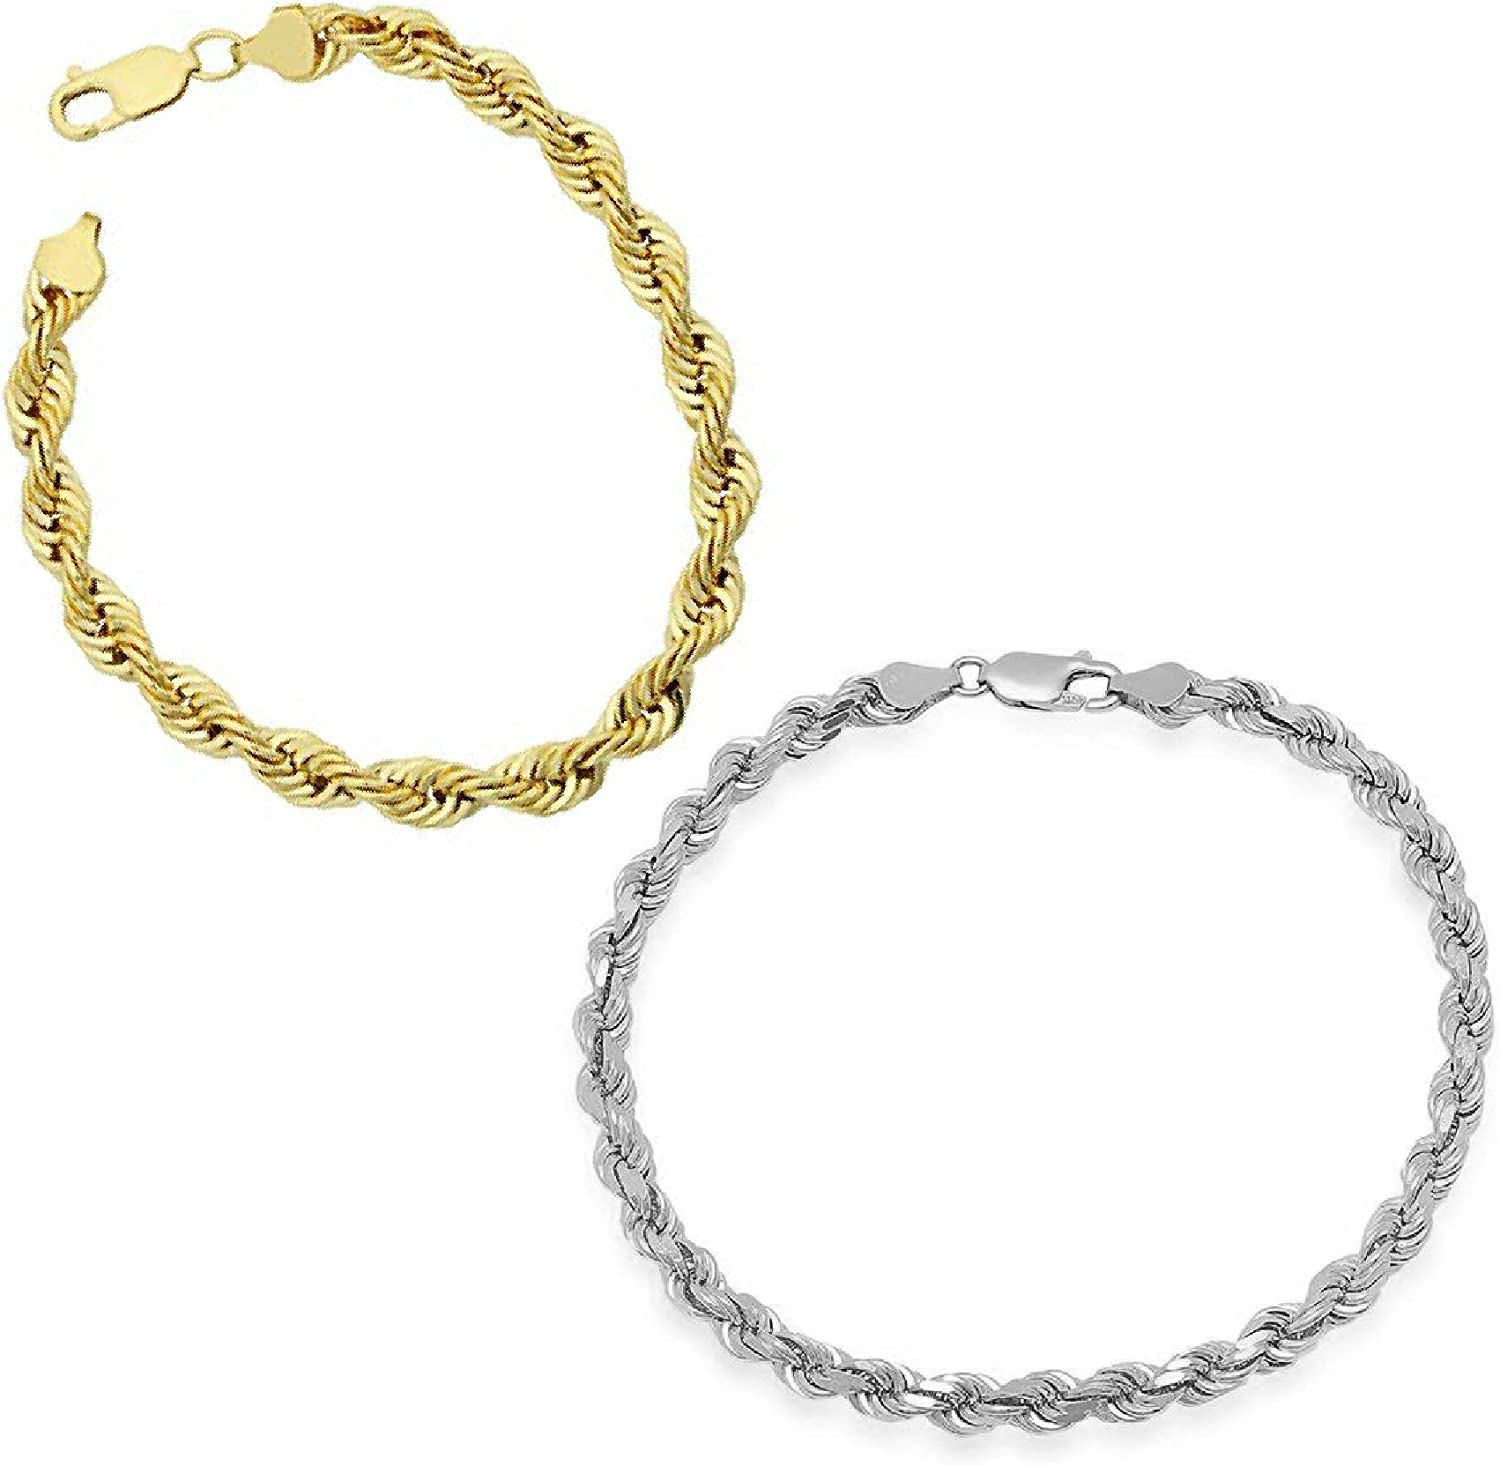 Roy Rose Jewelry 14K Yellow Gold 6 inch Length Solid Rope Chain Bracelets in Yellow or White Gold with Lobster Claw Clasp